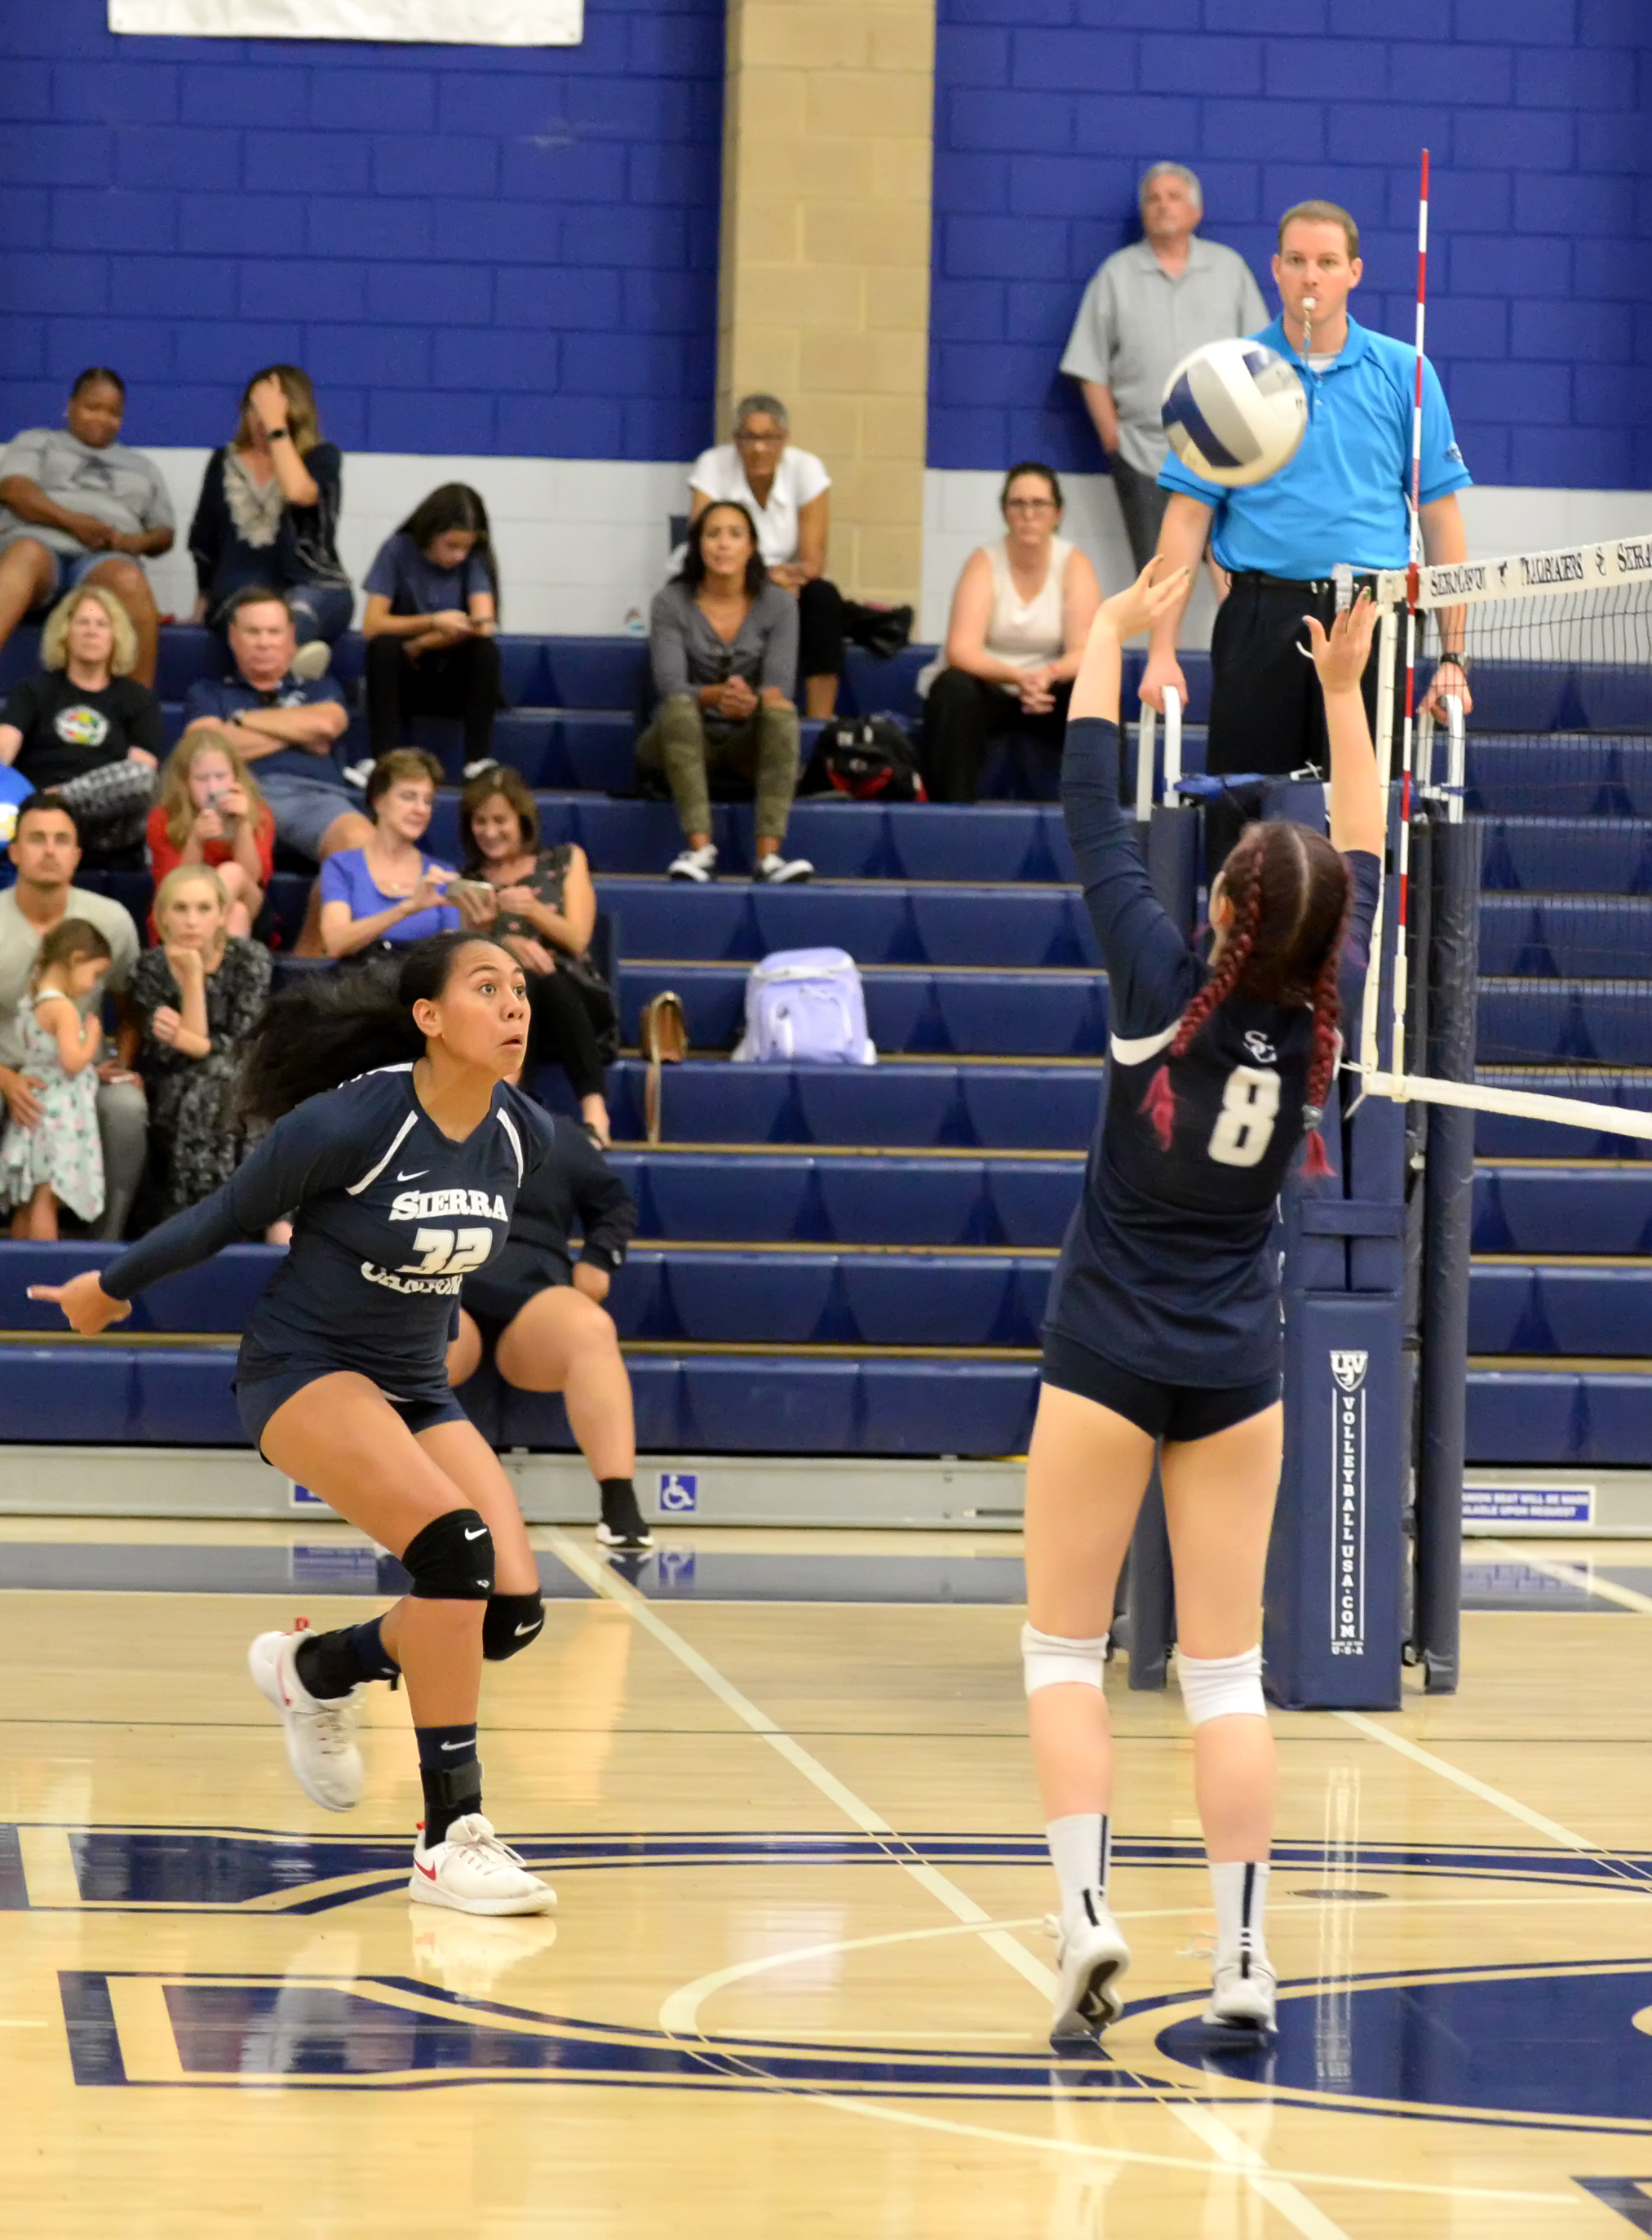 Sierra Canyon Girls Volleyball Continues Impressive Season Ranked 19 In The Nation Sierra Canyon Athletics